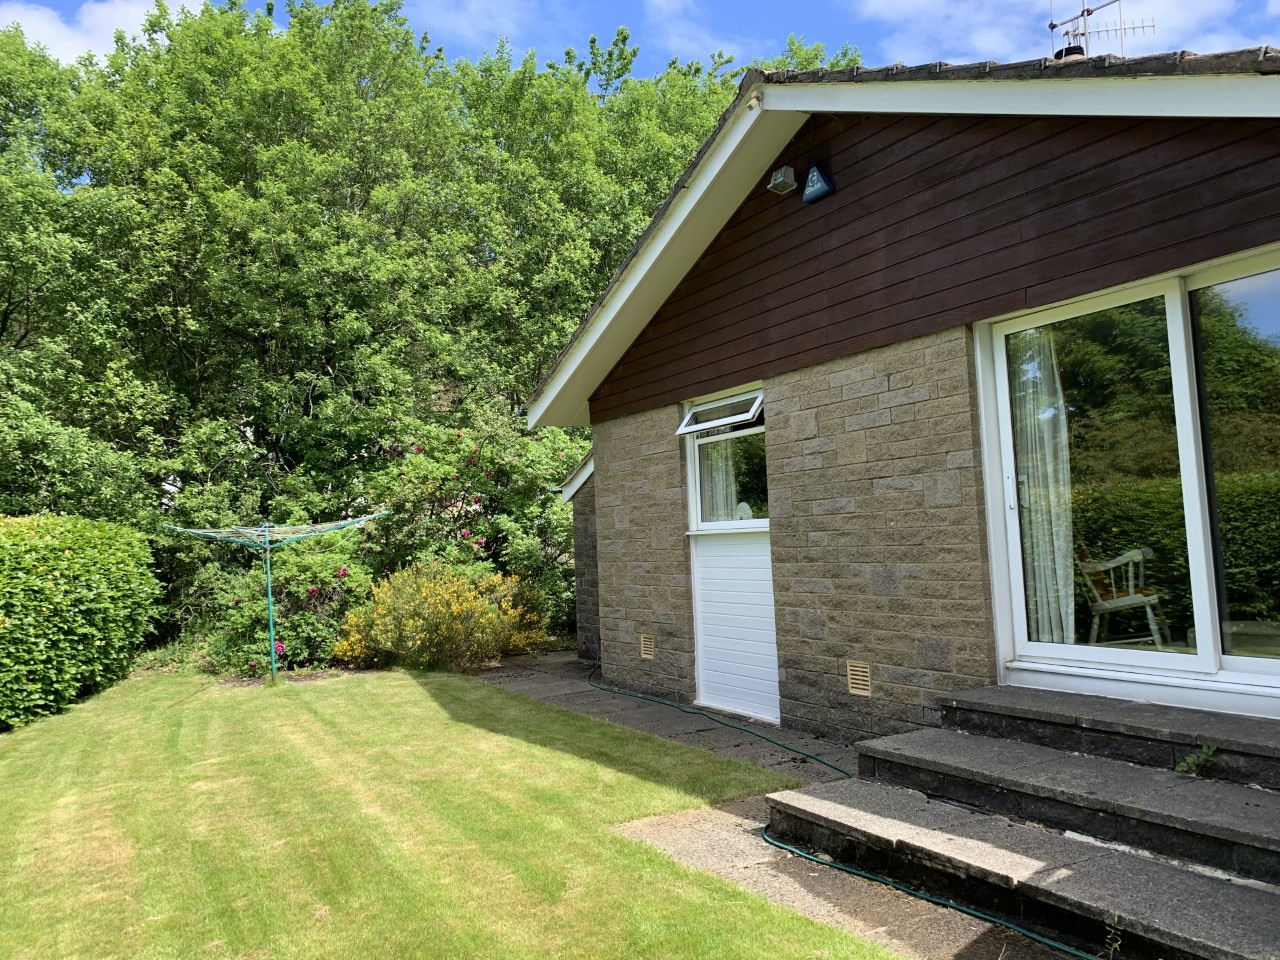 4 bedroom detached bungalow For Sale in Todmorden - Photograph 24.